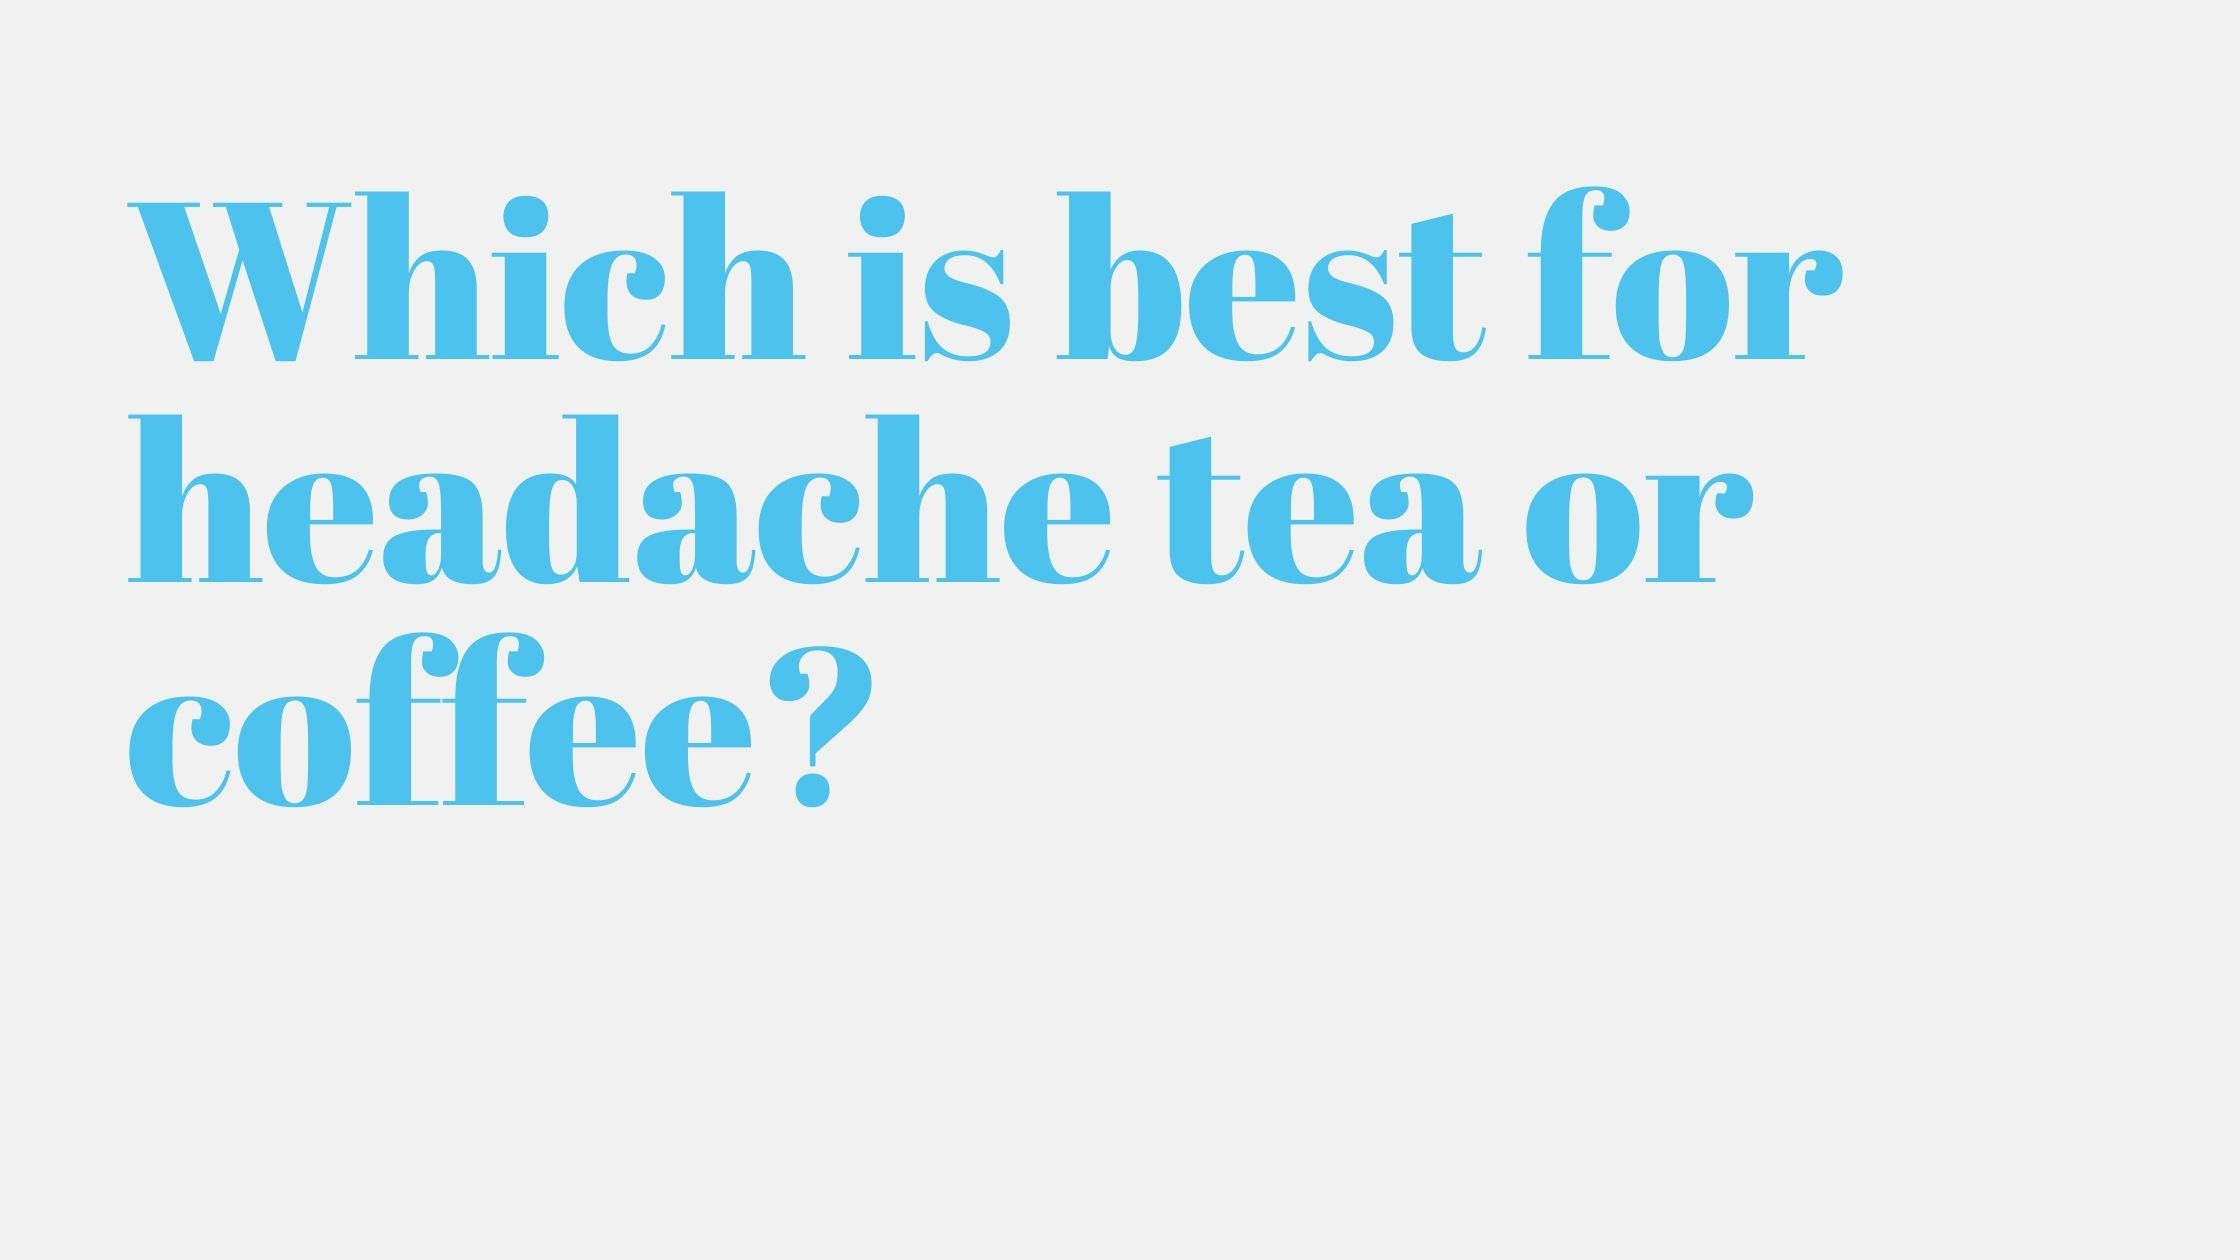 Which is best for headache tea or coffee?